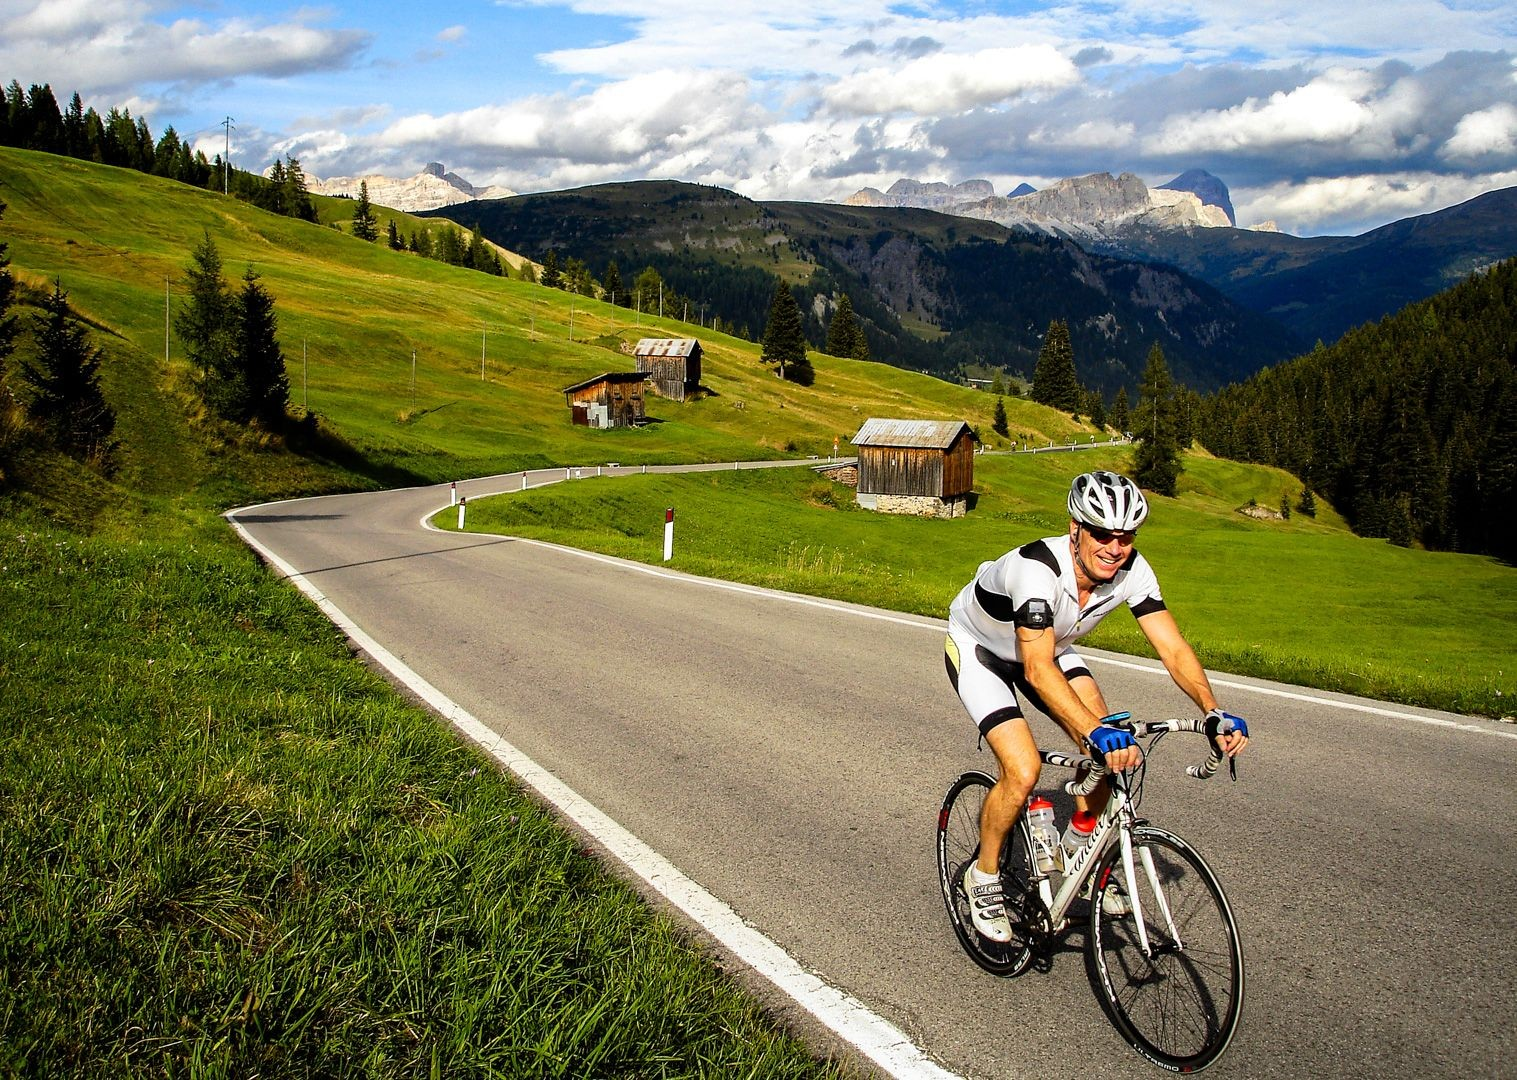 incredible-road-cycling-with-saddle-skedaddle-in-italy.jpg - Italy - Italian Dolomites - Guided Road Cycling Holiday - Road Cycling